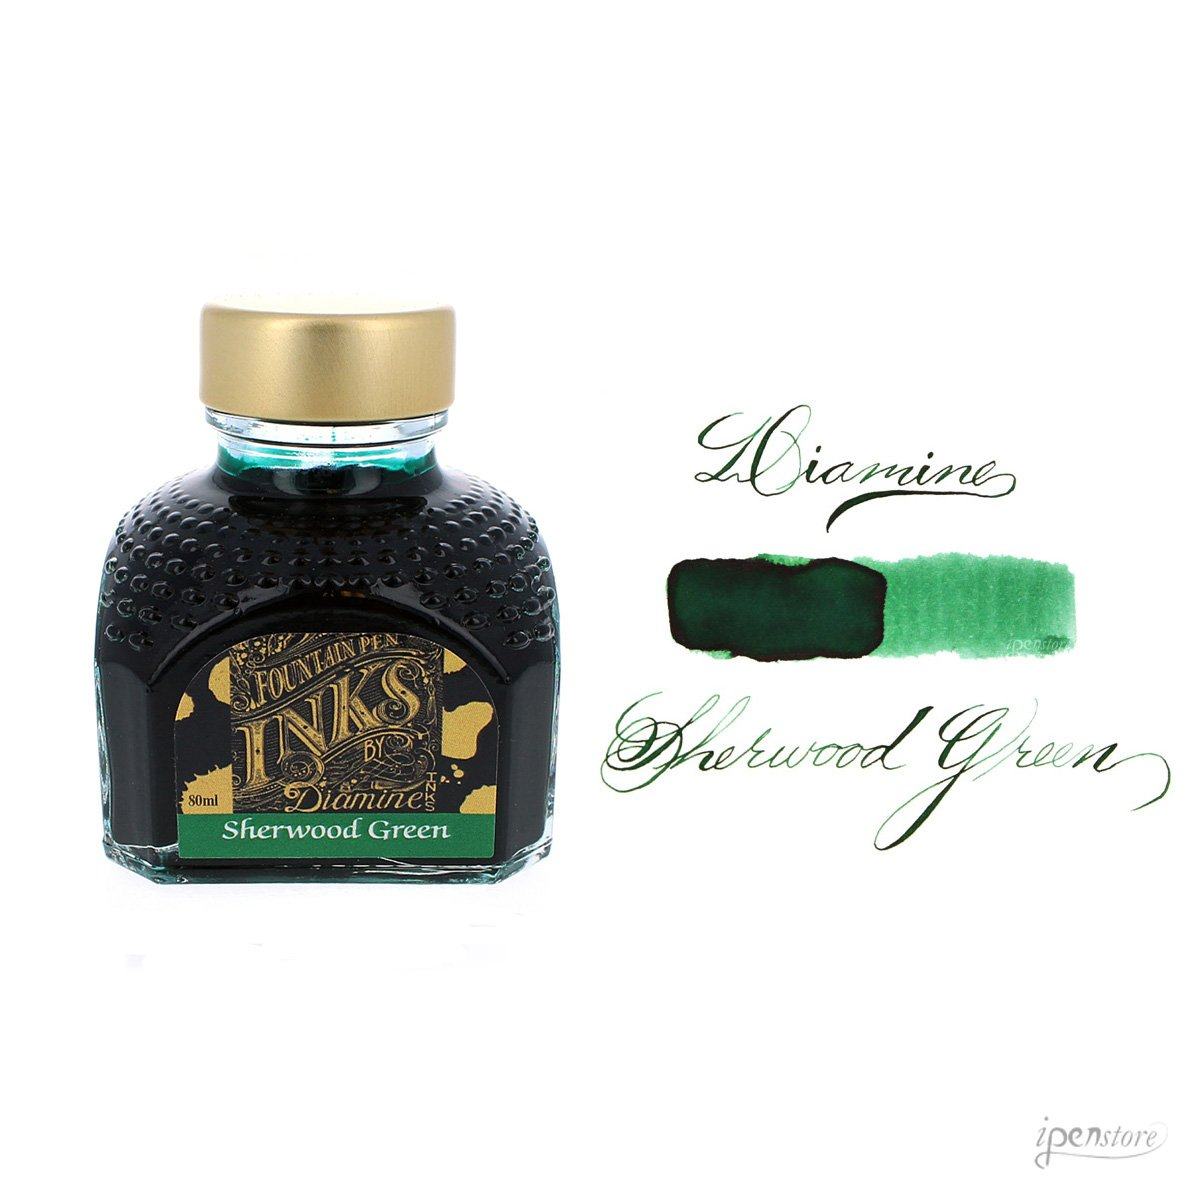 Diamine - Tinta para estilográfia, Sherwood Green 80ml